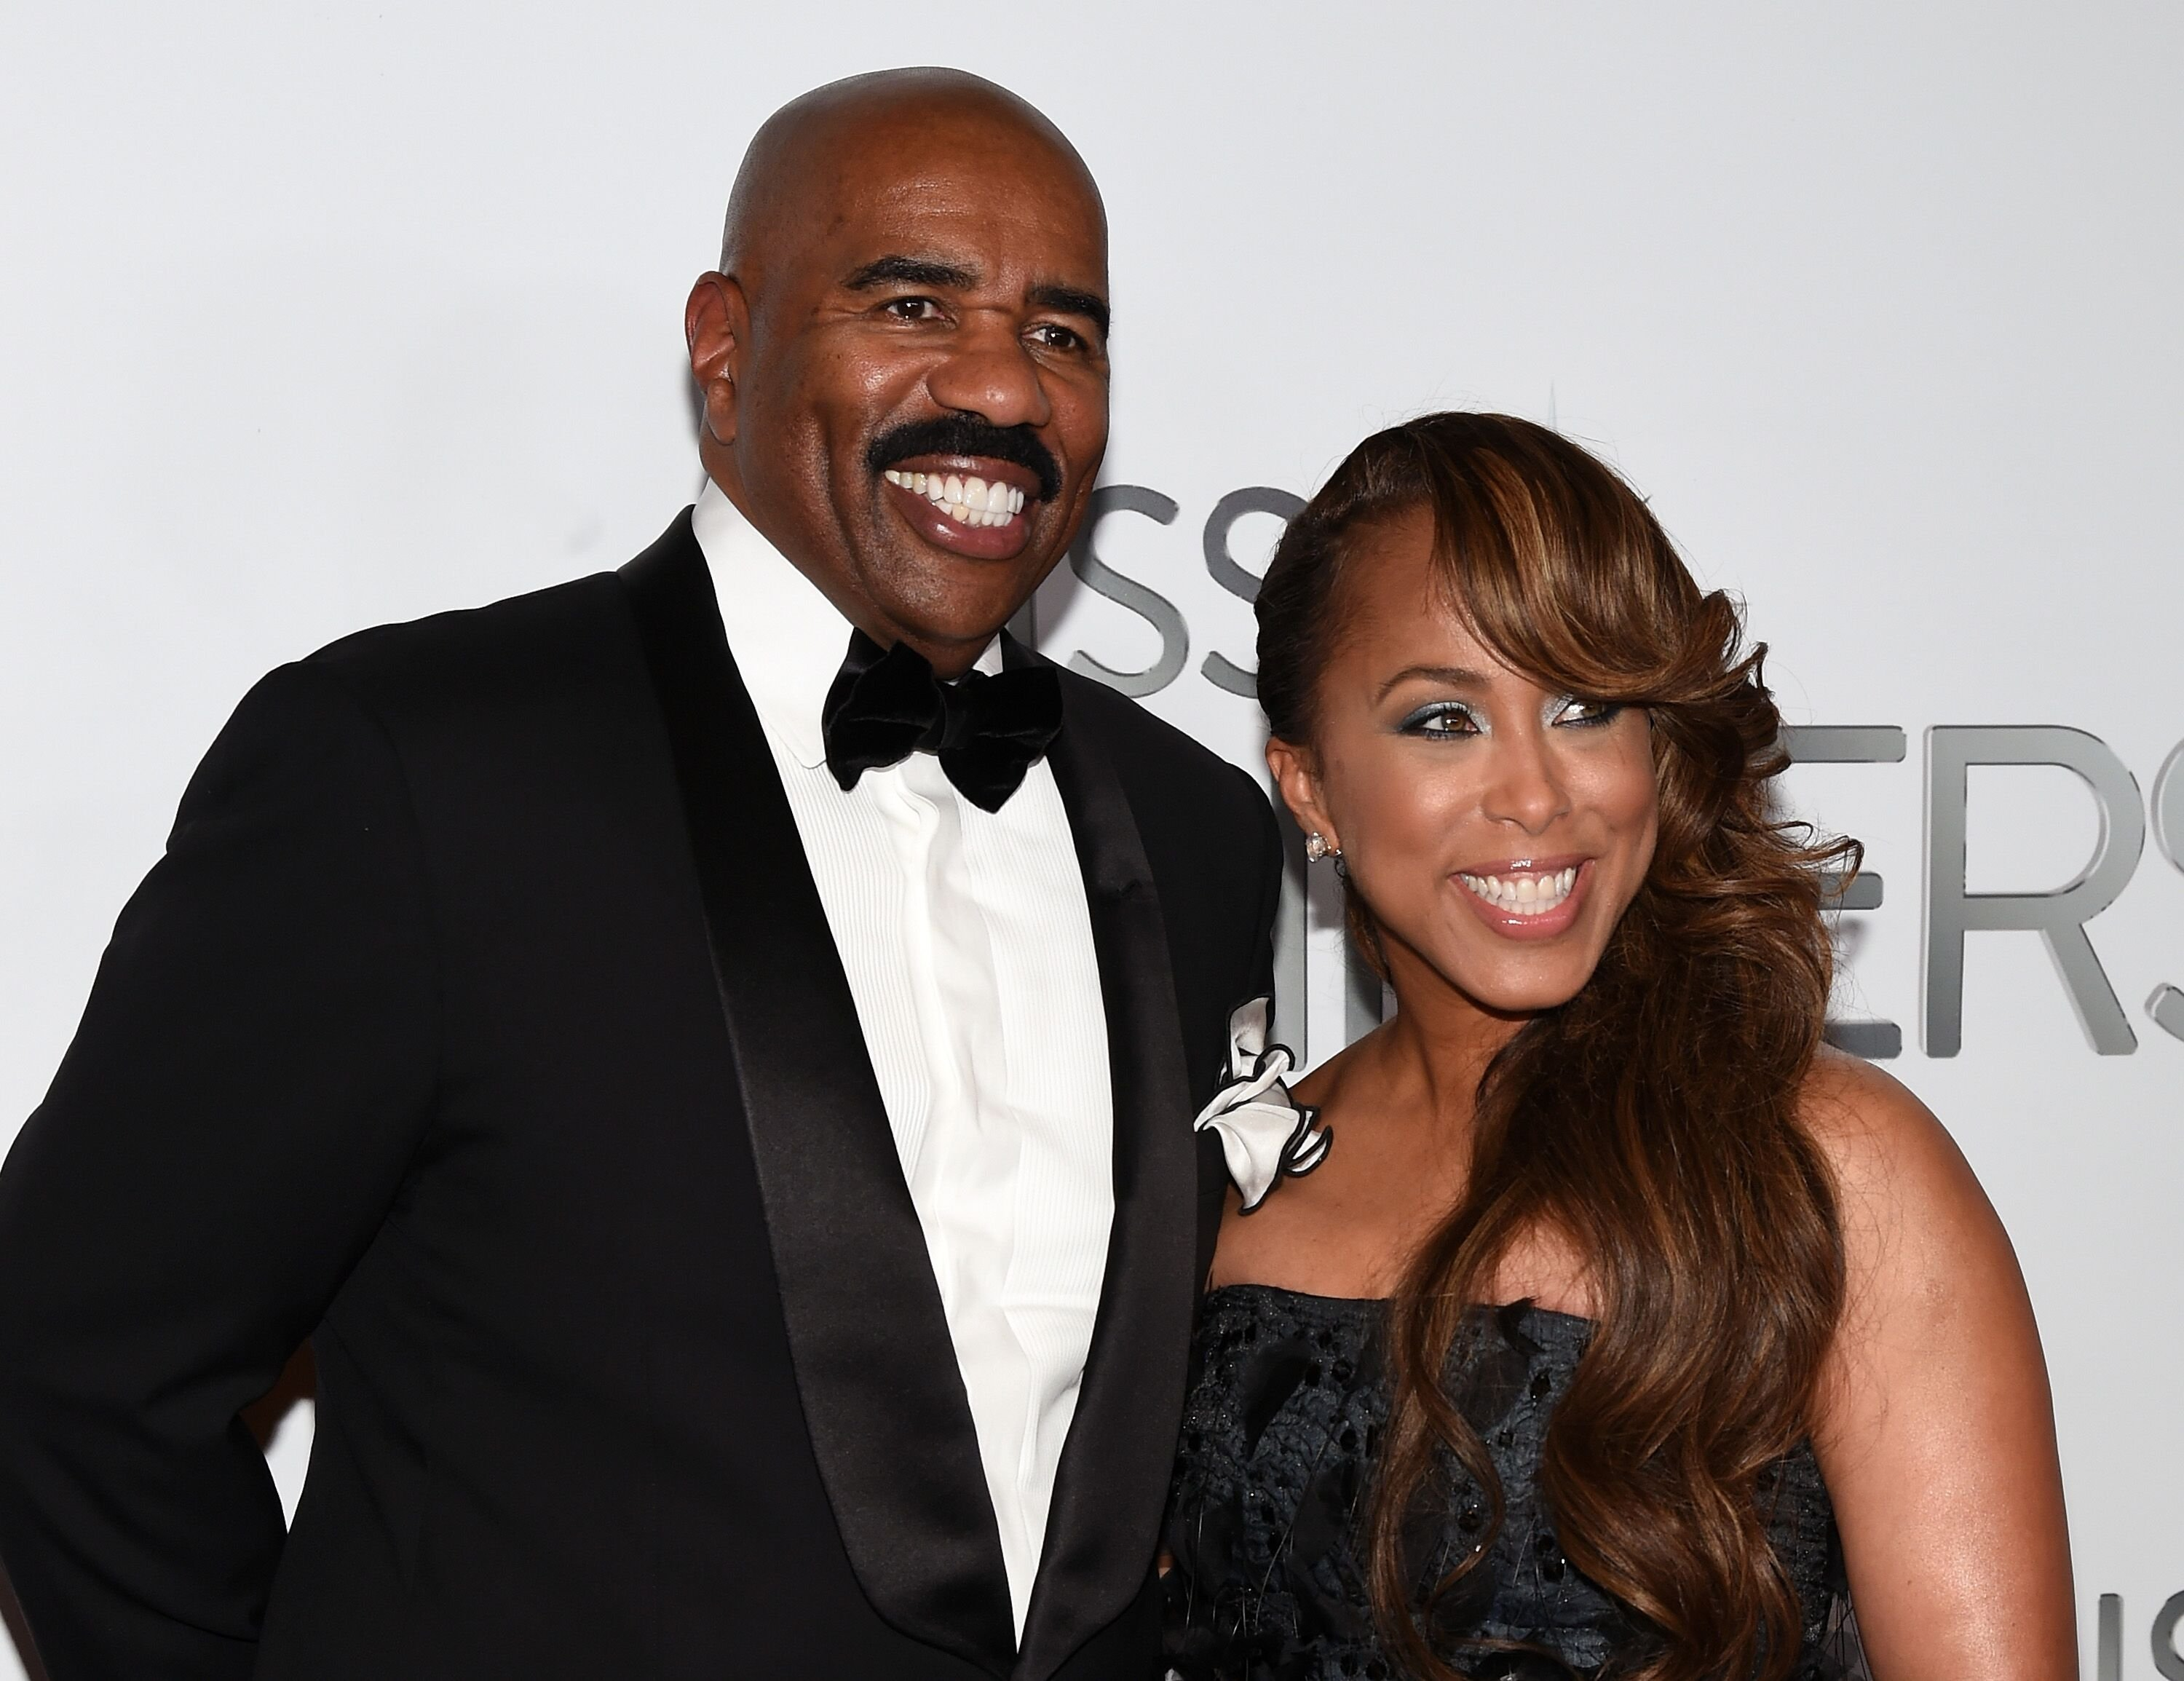 Steve Harvey and Marjorie Harvey at the Miss Universe Pageant/ Source: Getty Images